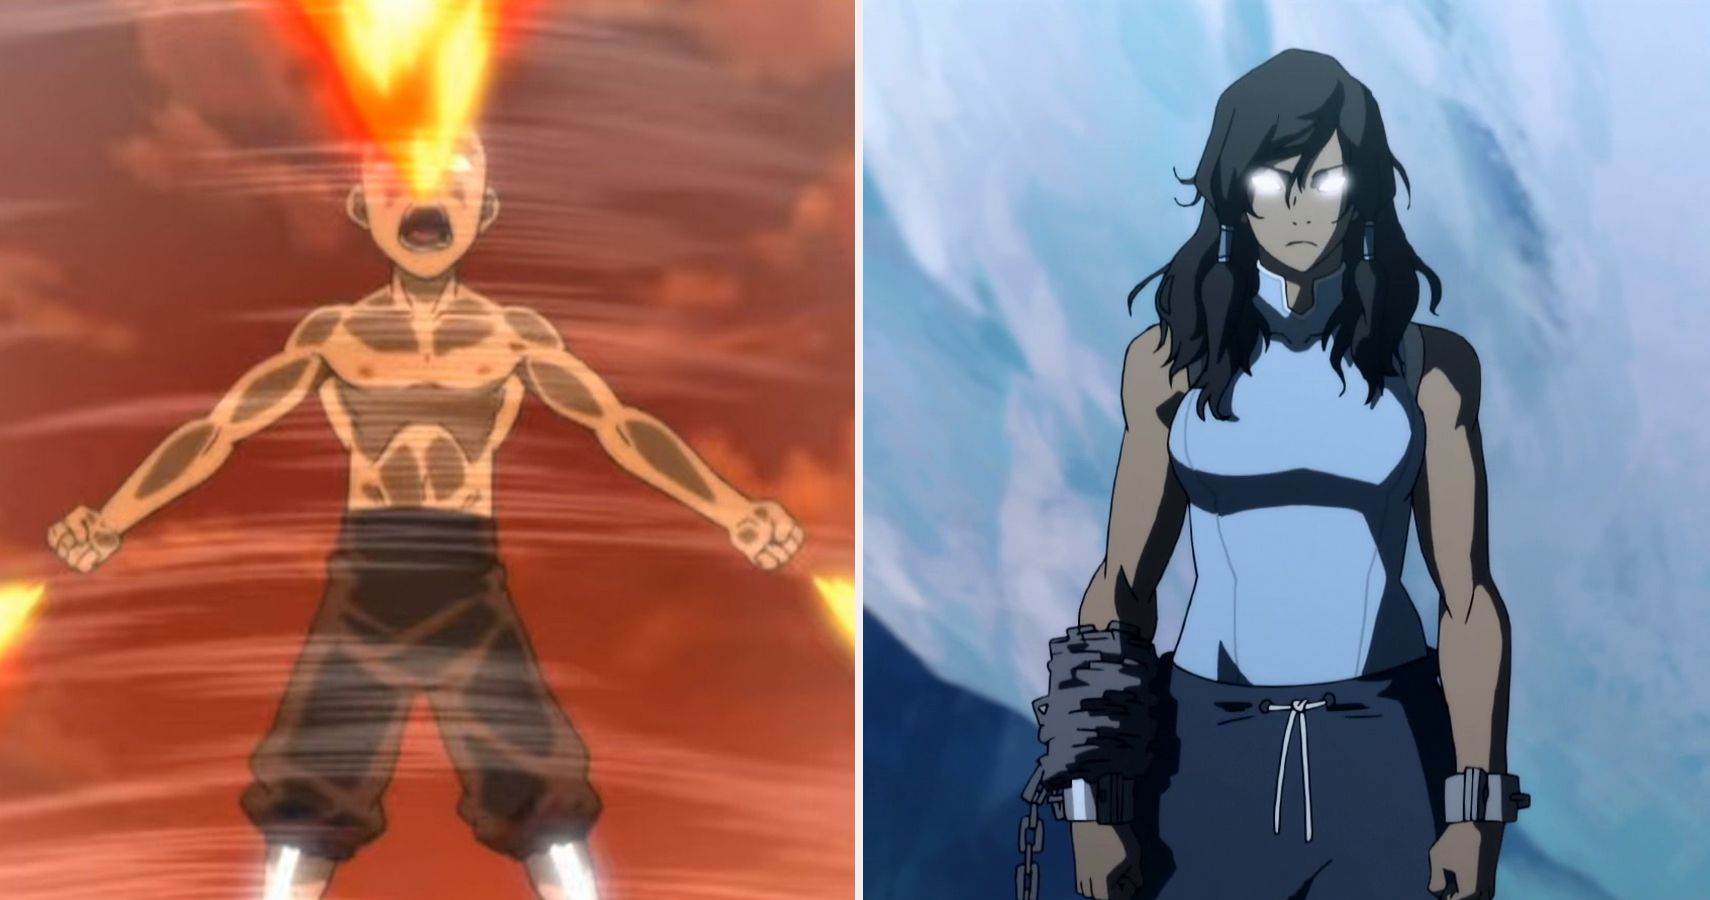 Avatar The Last Airbender 5 Times Aang Was The Most Powerful Avatar 5 Times It Was Korra